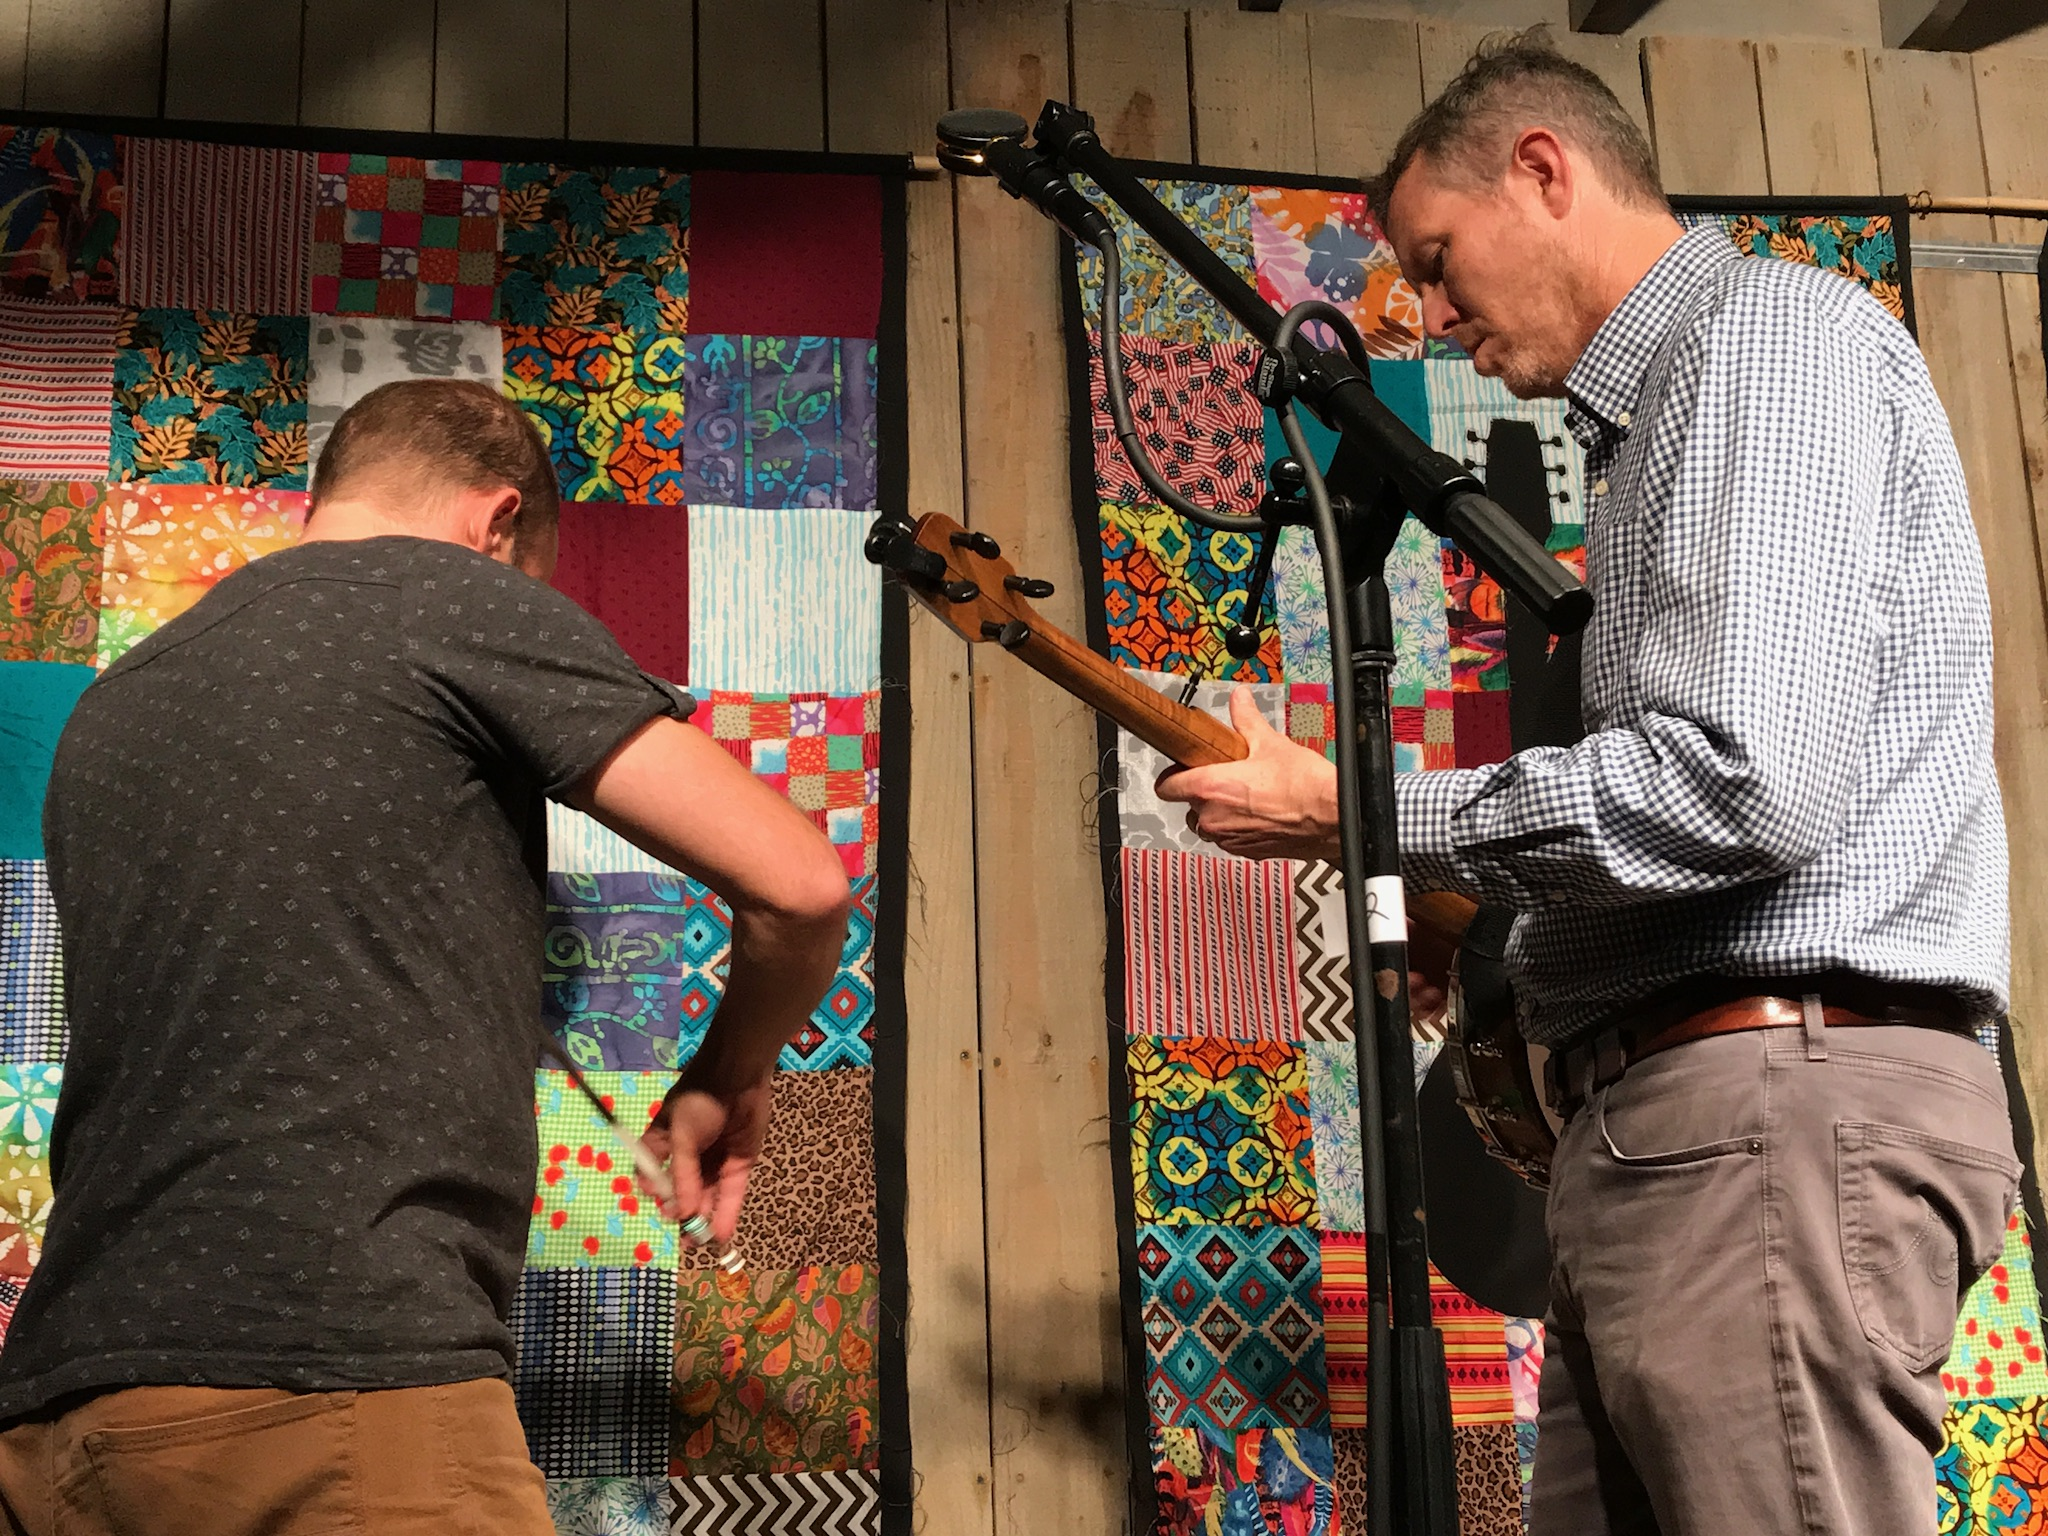 Shad Cobb and Robbie Fulks warming up for a fiddle and banjo duet at the start of the second set at the IBMM in Owensboro.  Photo taken by and the property of FourWalls.